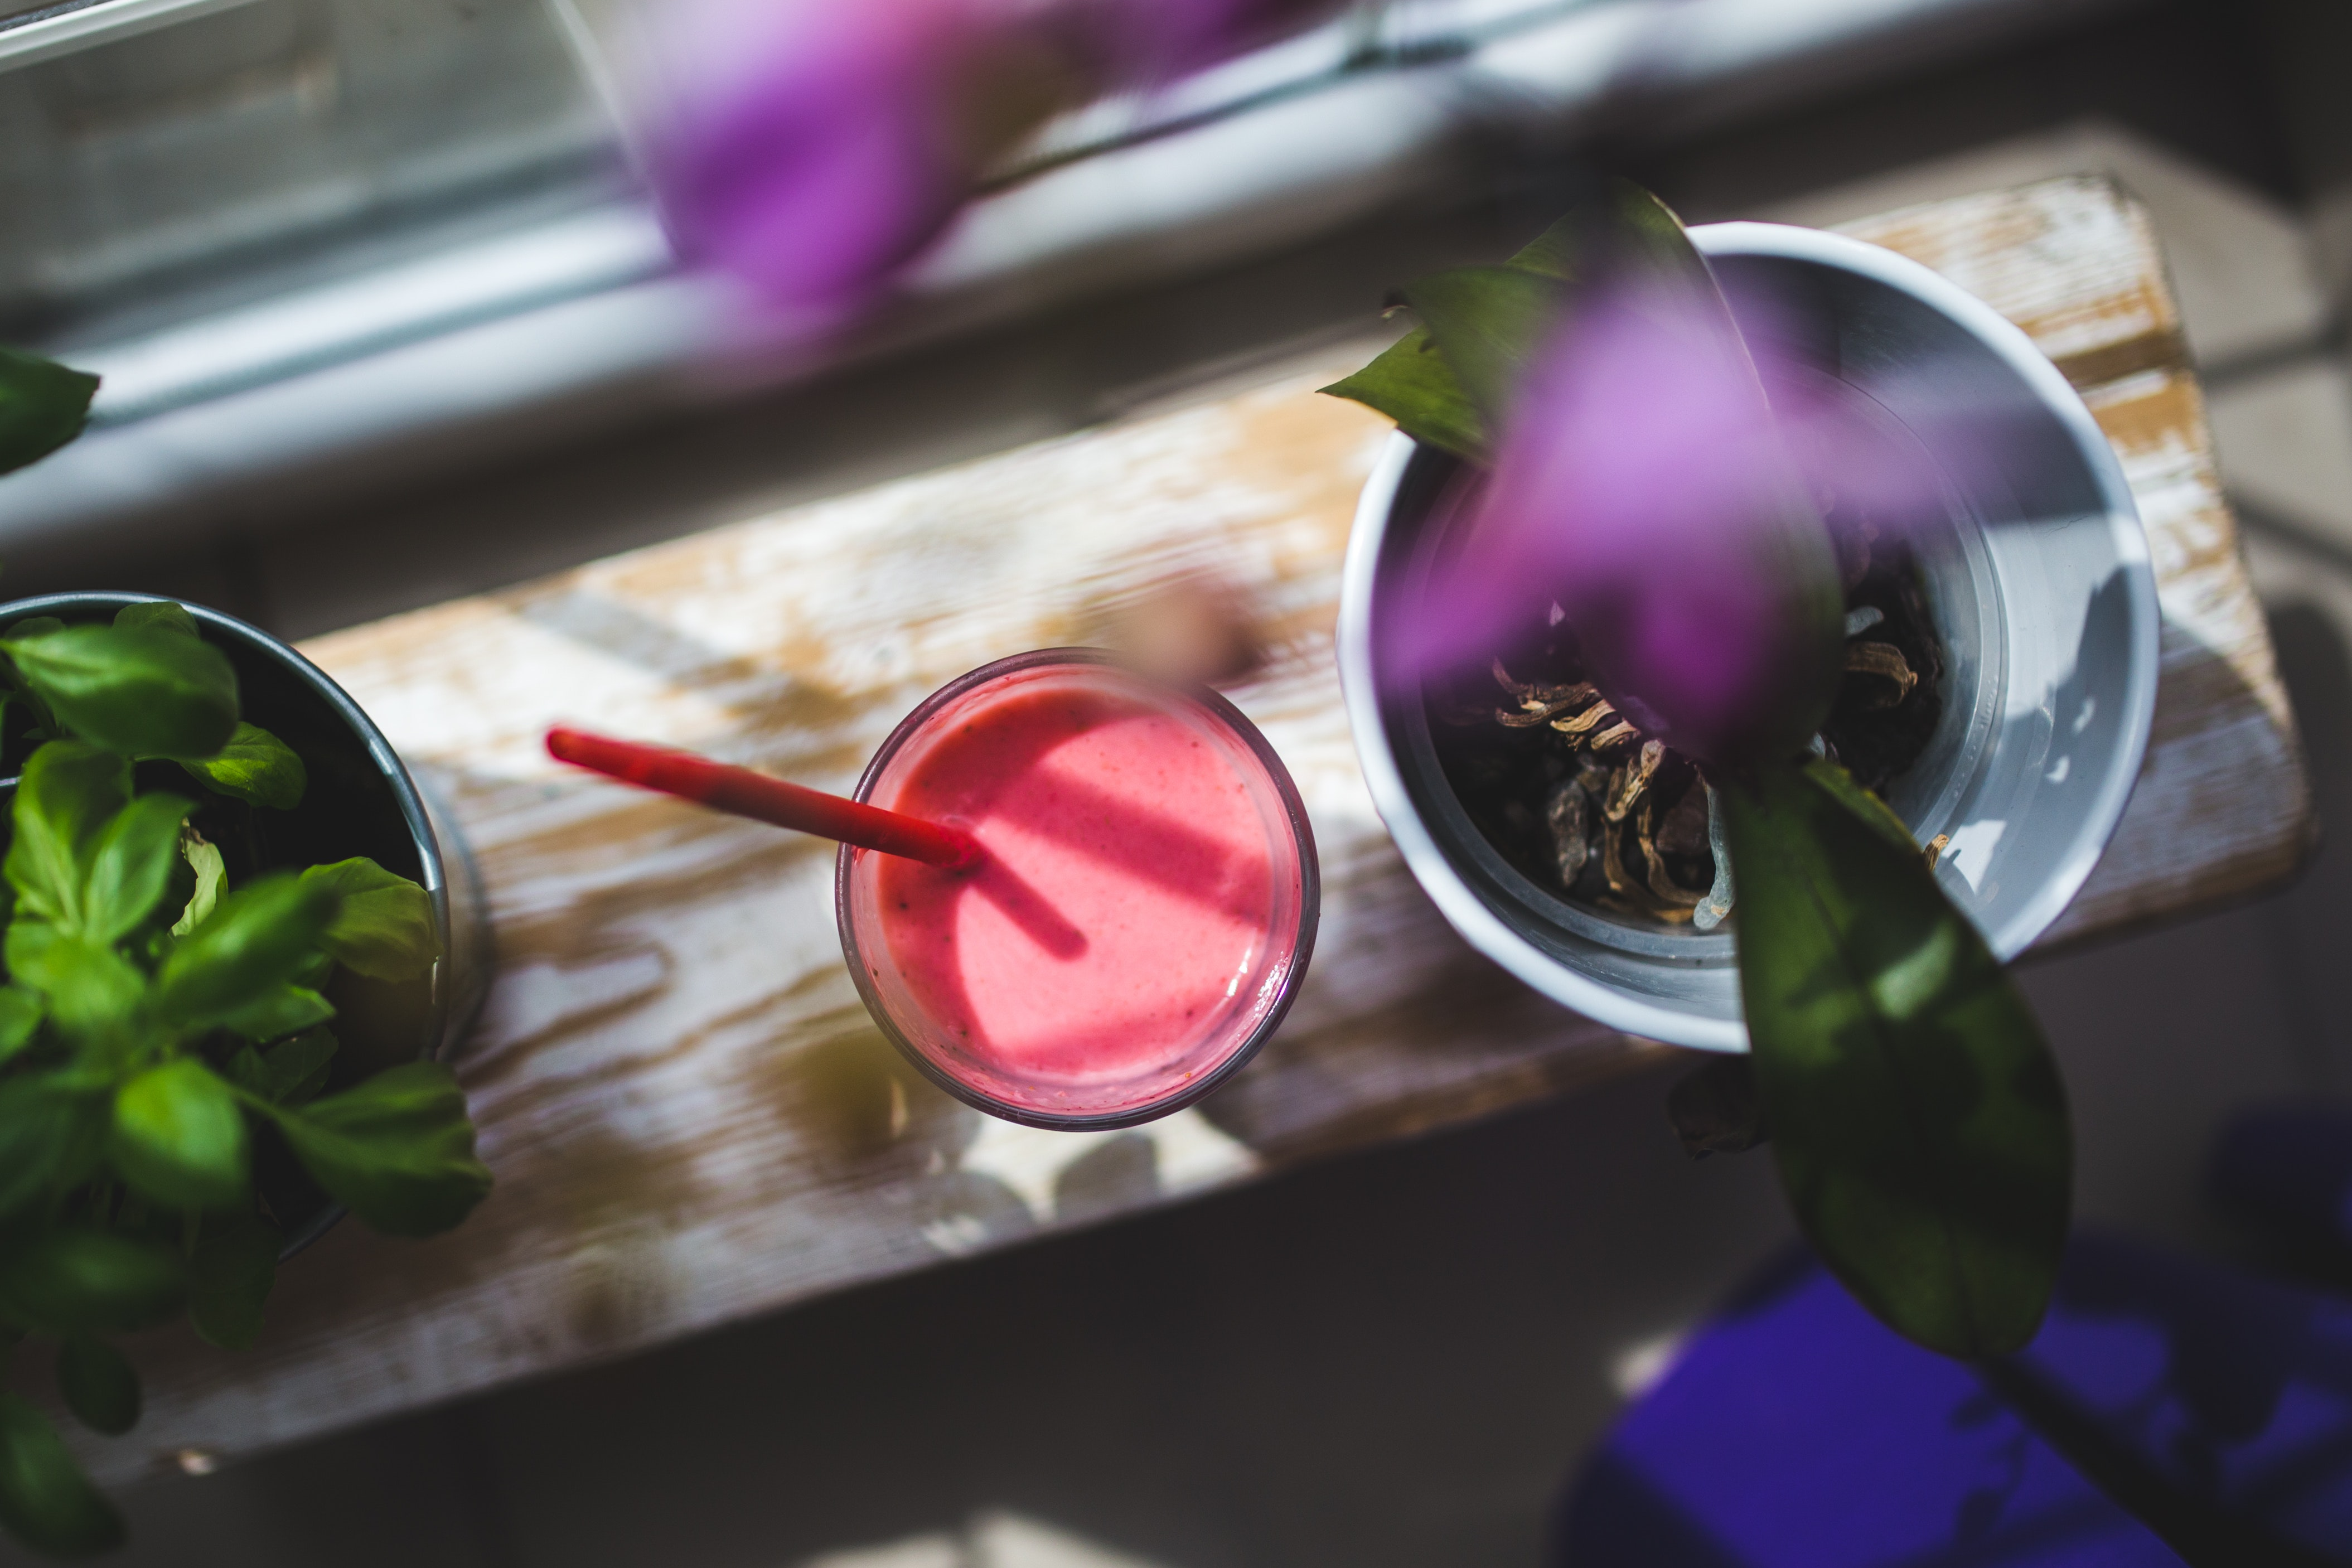 Strawberry yogurt, Indoors, Wood, Traditional, Table, HQ Photo